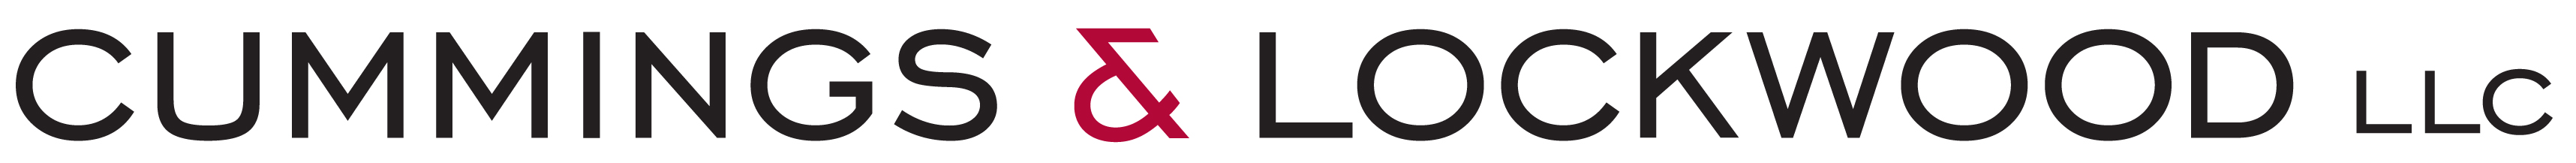 Cummings and lockwood logo